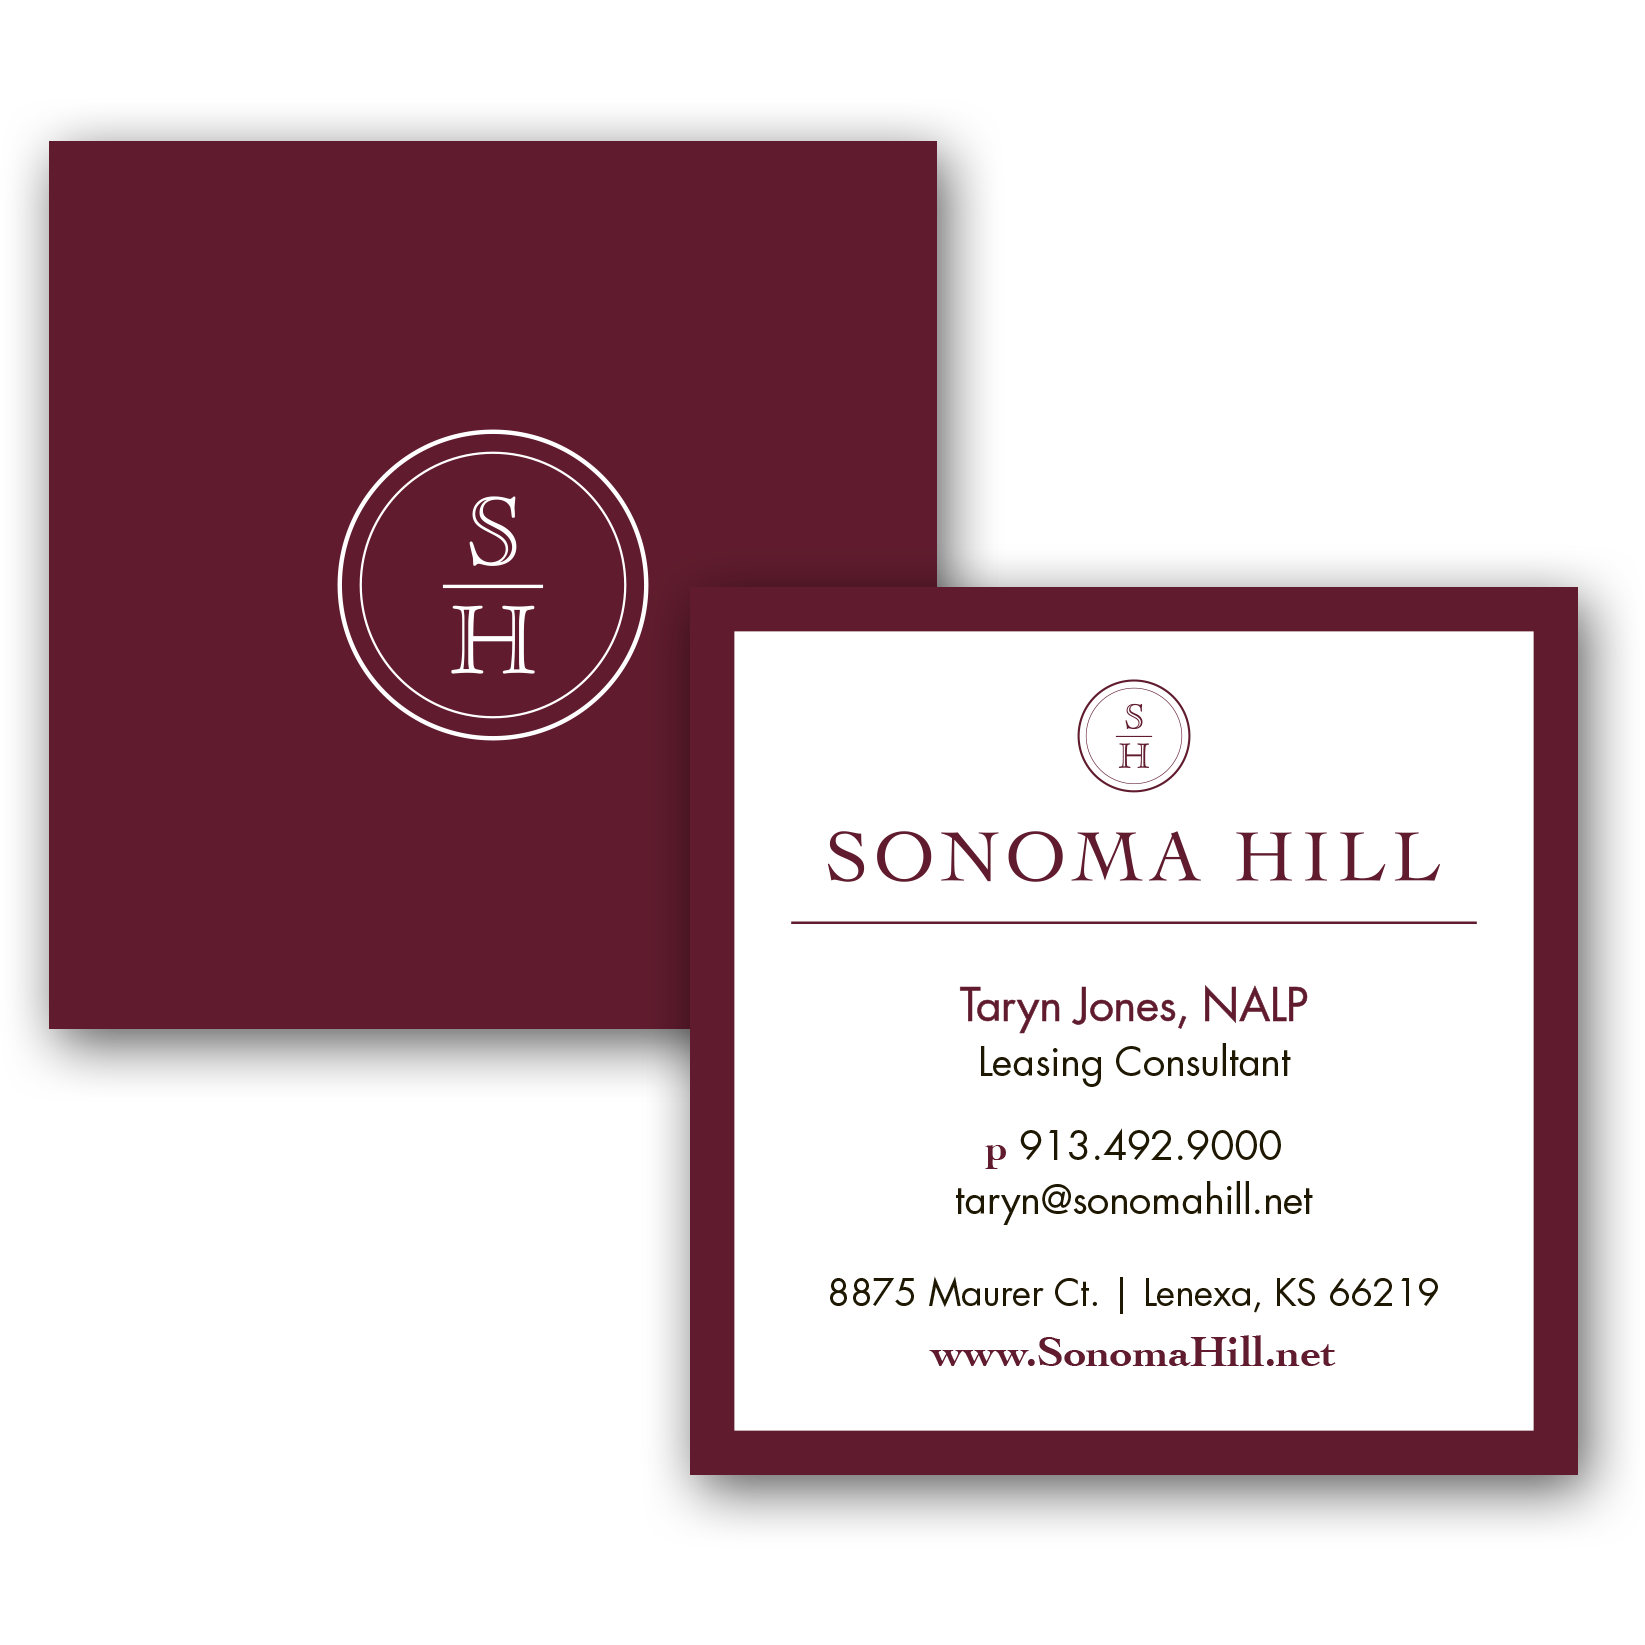 Sonoma Hill Business Cards